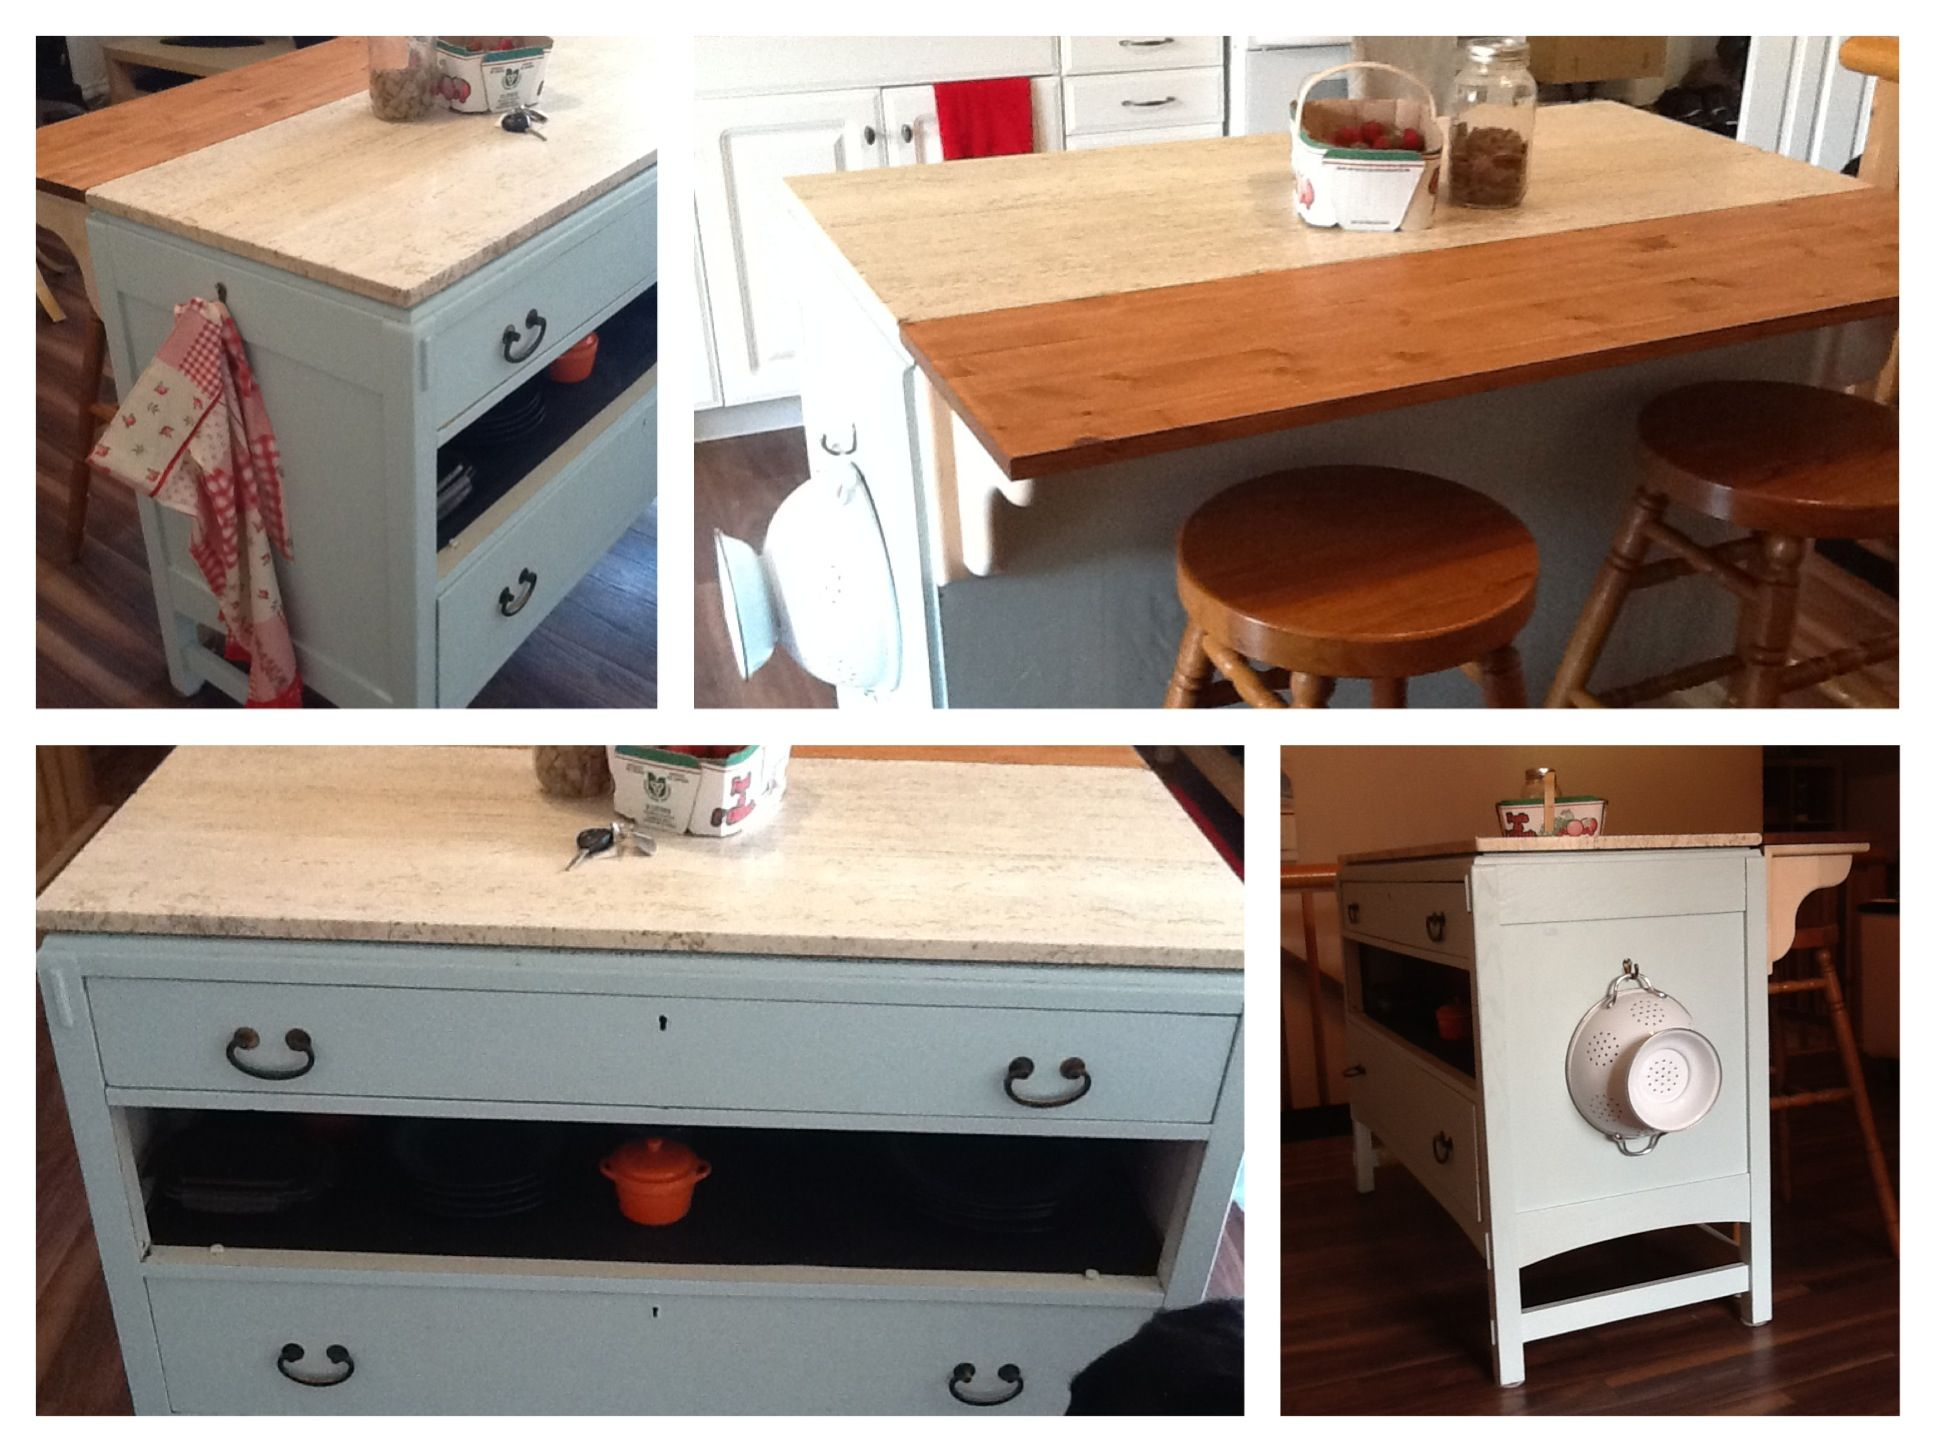 Dresser turned breakfast bar perfect for storage and extra seating